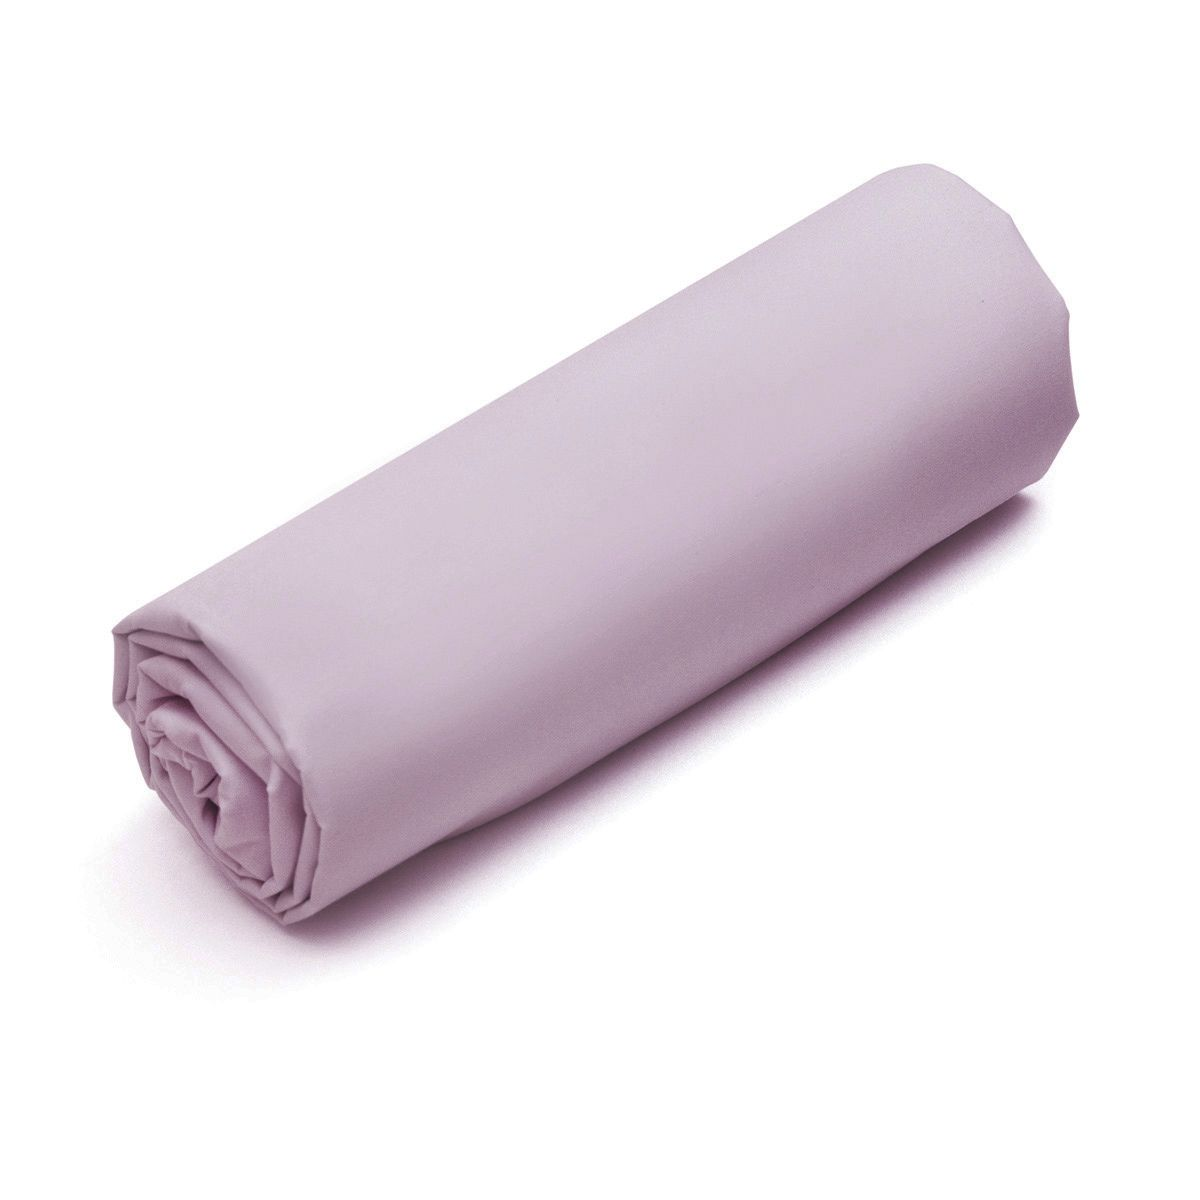 Plain fitted sheet cotton